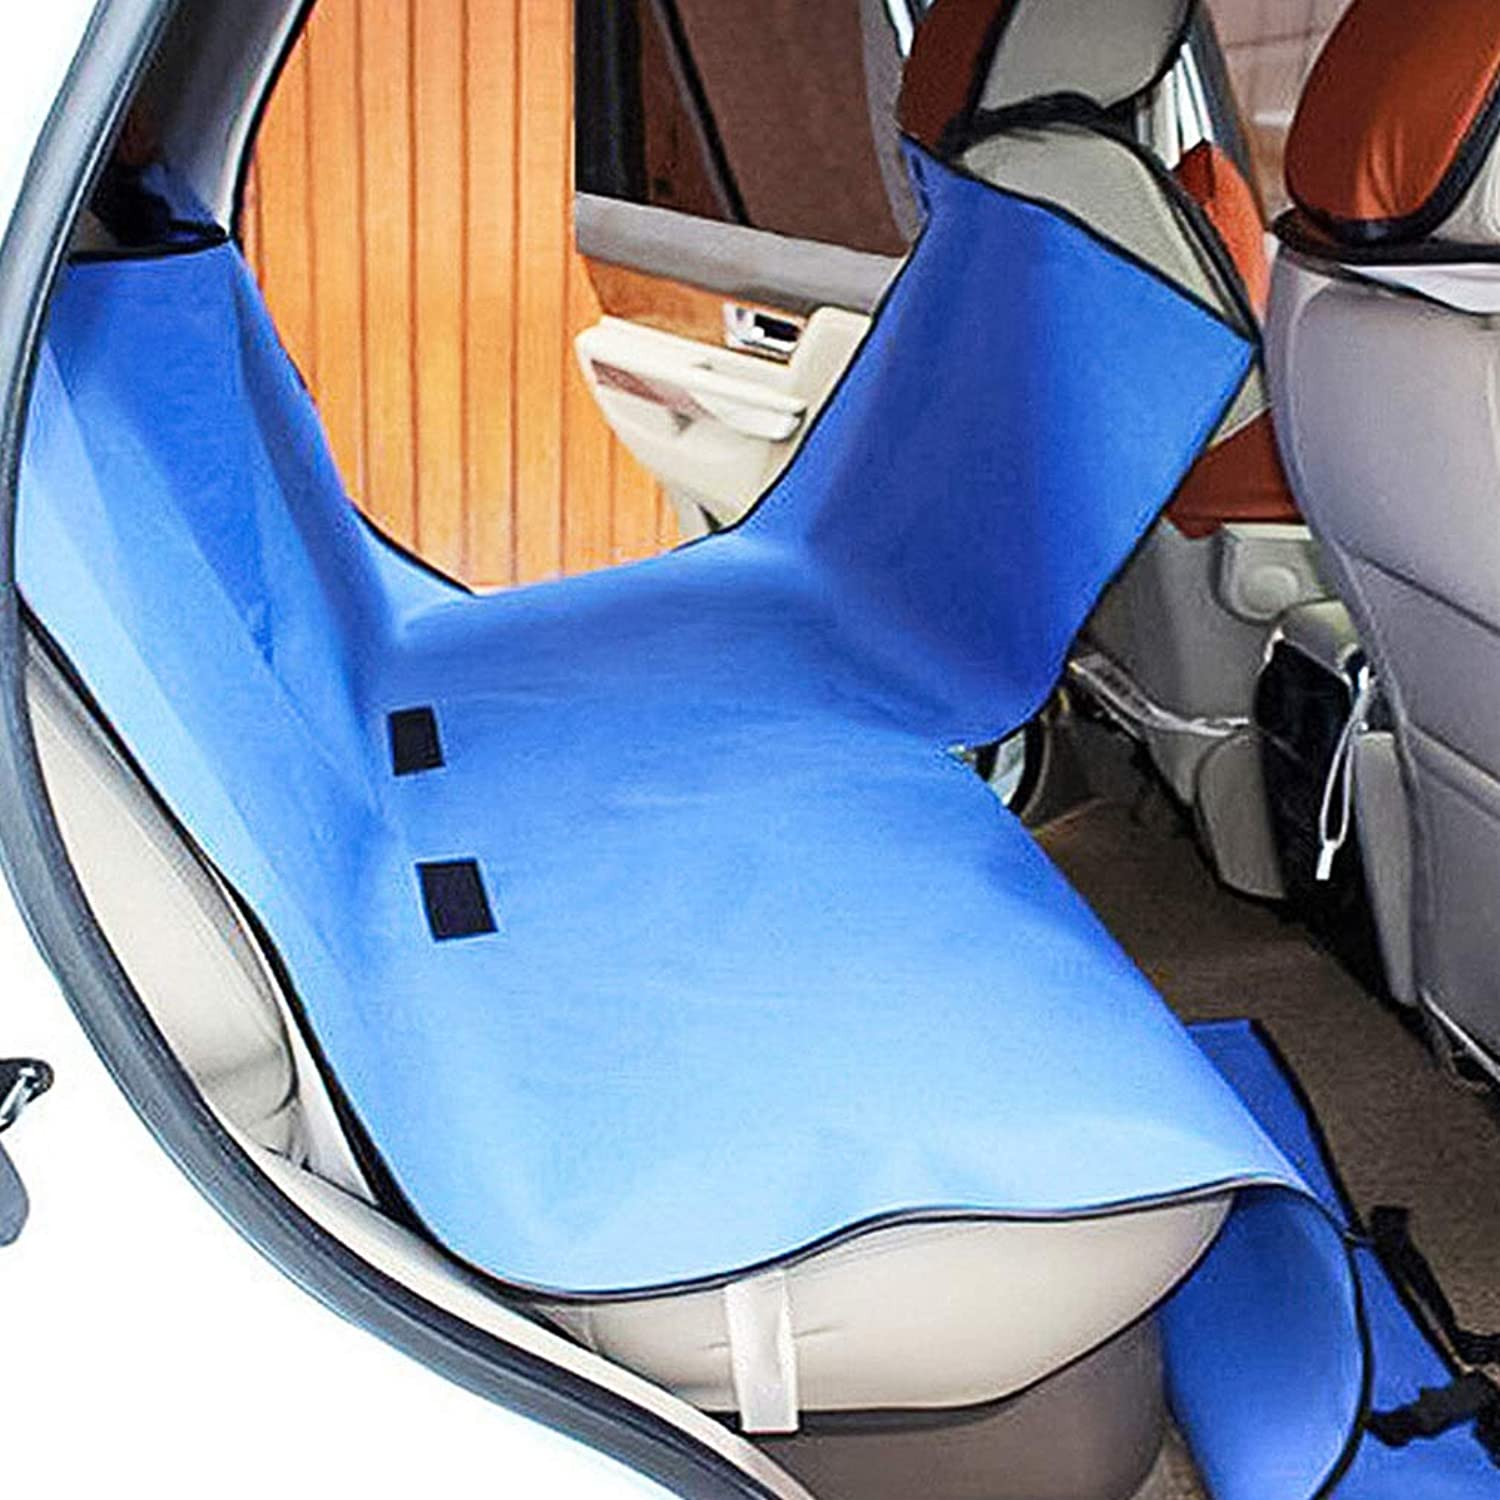 Dog Car Seat Cover  Waterproof Pet Seat Cover Dog Travel Hammock Car Seat Predector Universal Fits All Cars